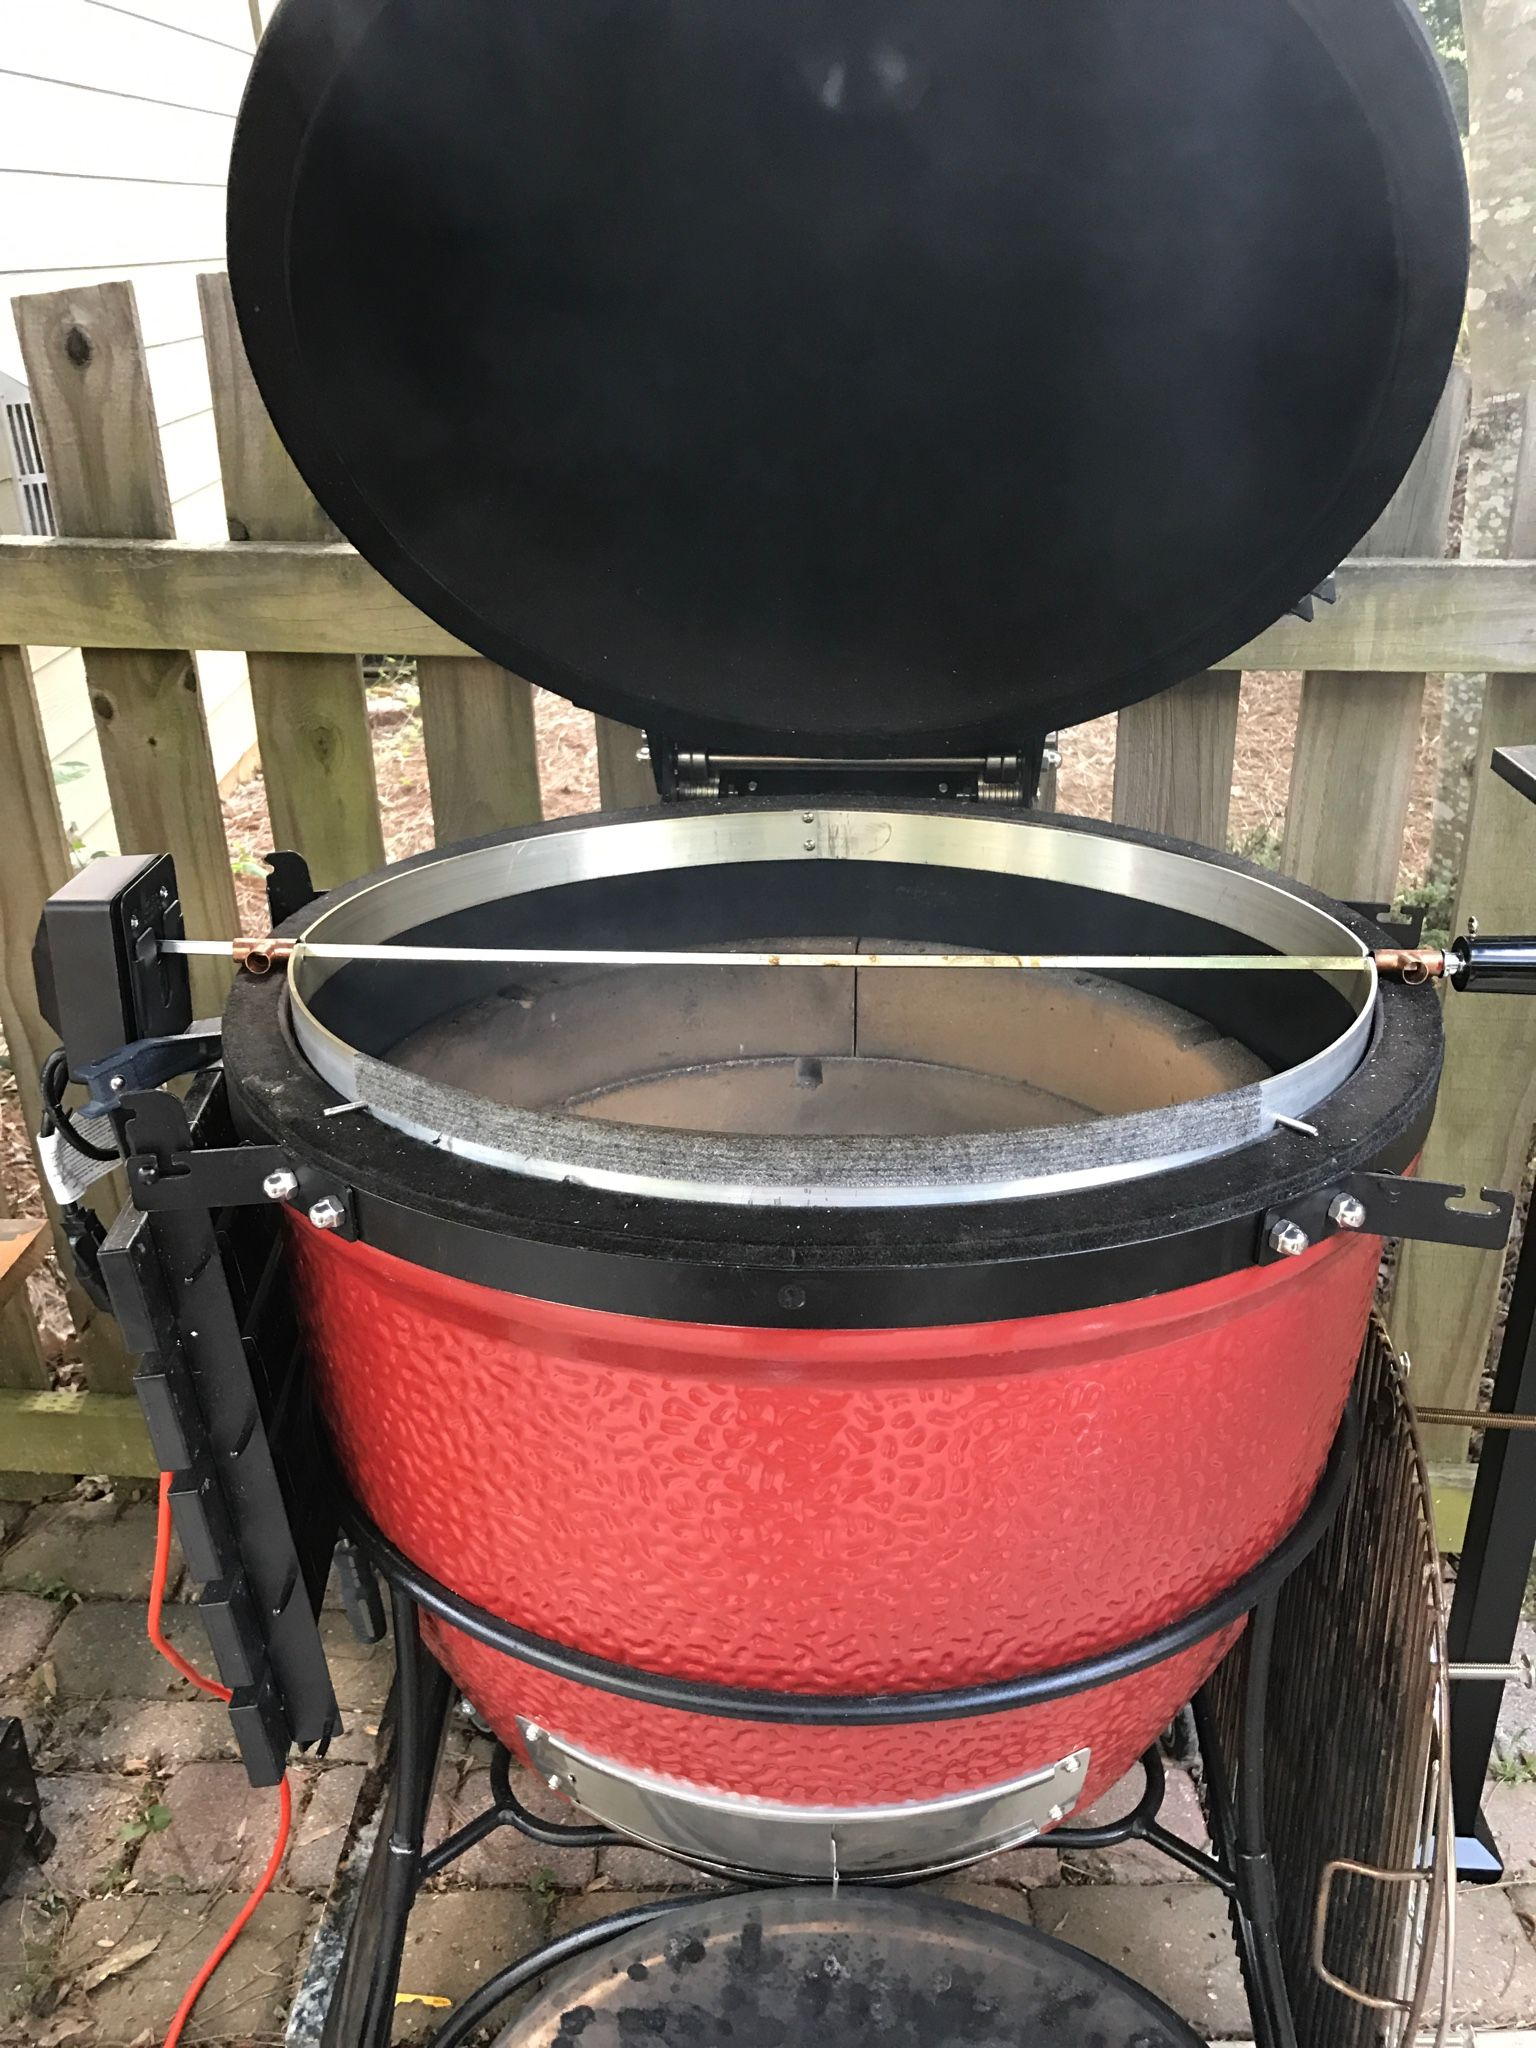 Bbq Guru Party Q Bootleg Joetisserie Do It Yourself Kamado Guru Bbq In 2019